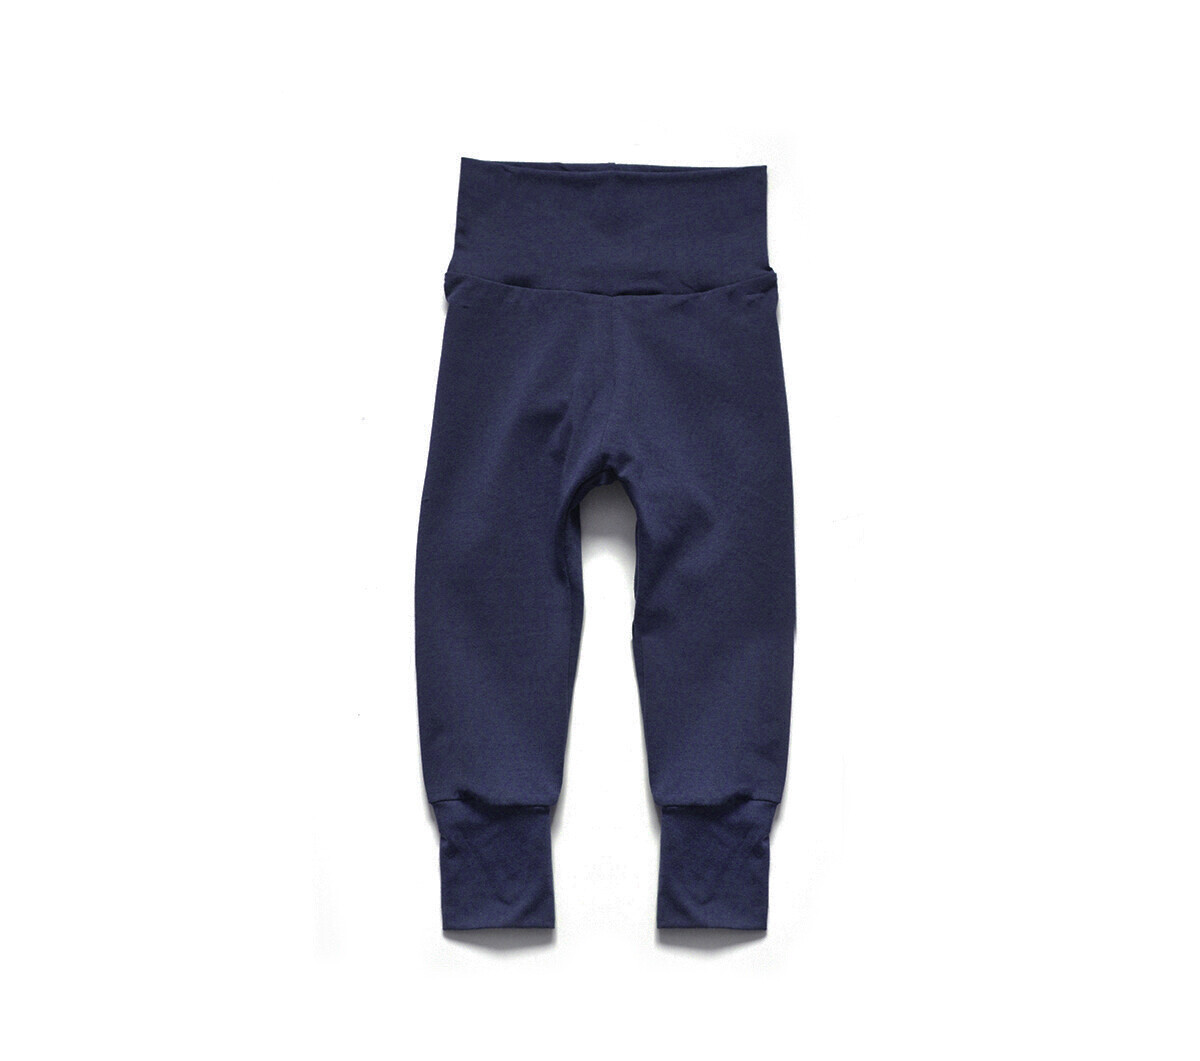 Bamboo Little Sprout Pants   Grow With Me Leggings   Navy